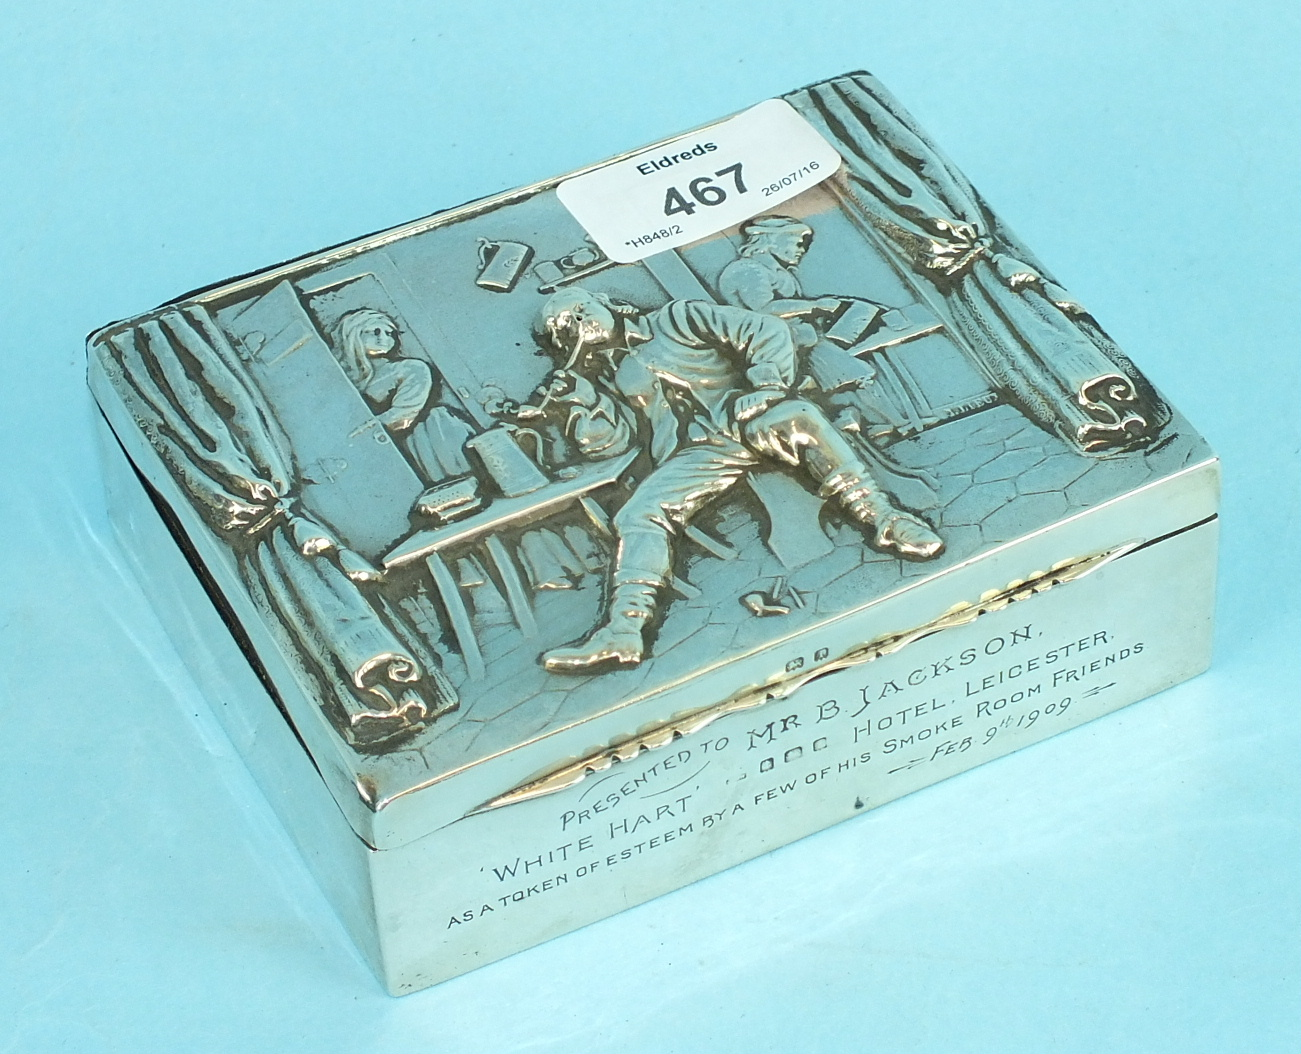 Lot 467 - An embossed cigarette box decorated with a tavern scene, presentation inscription to 'Mr B